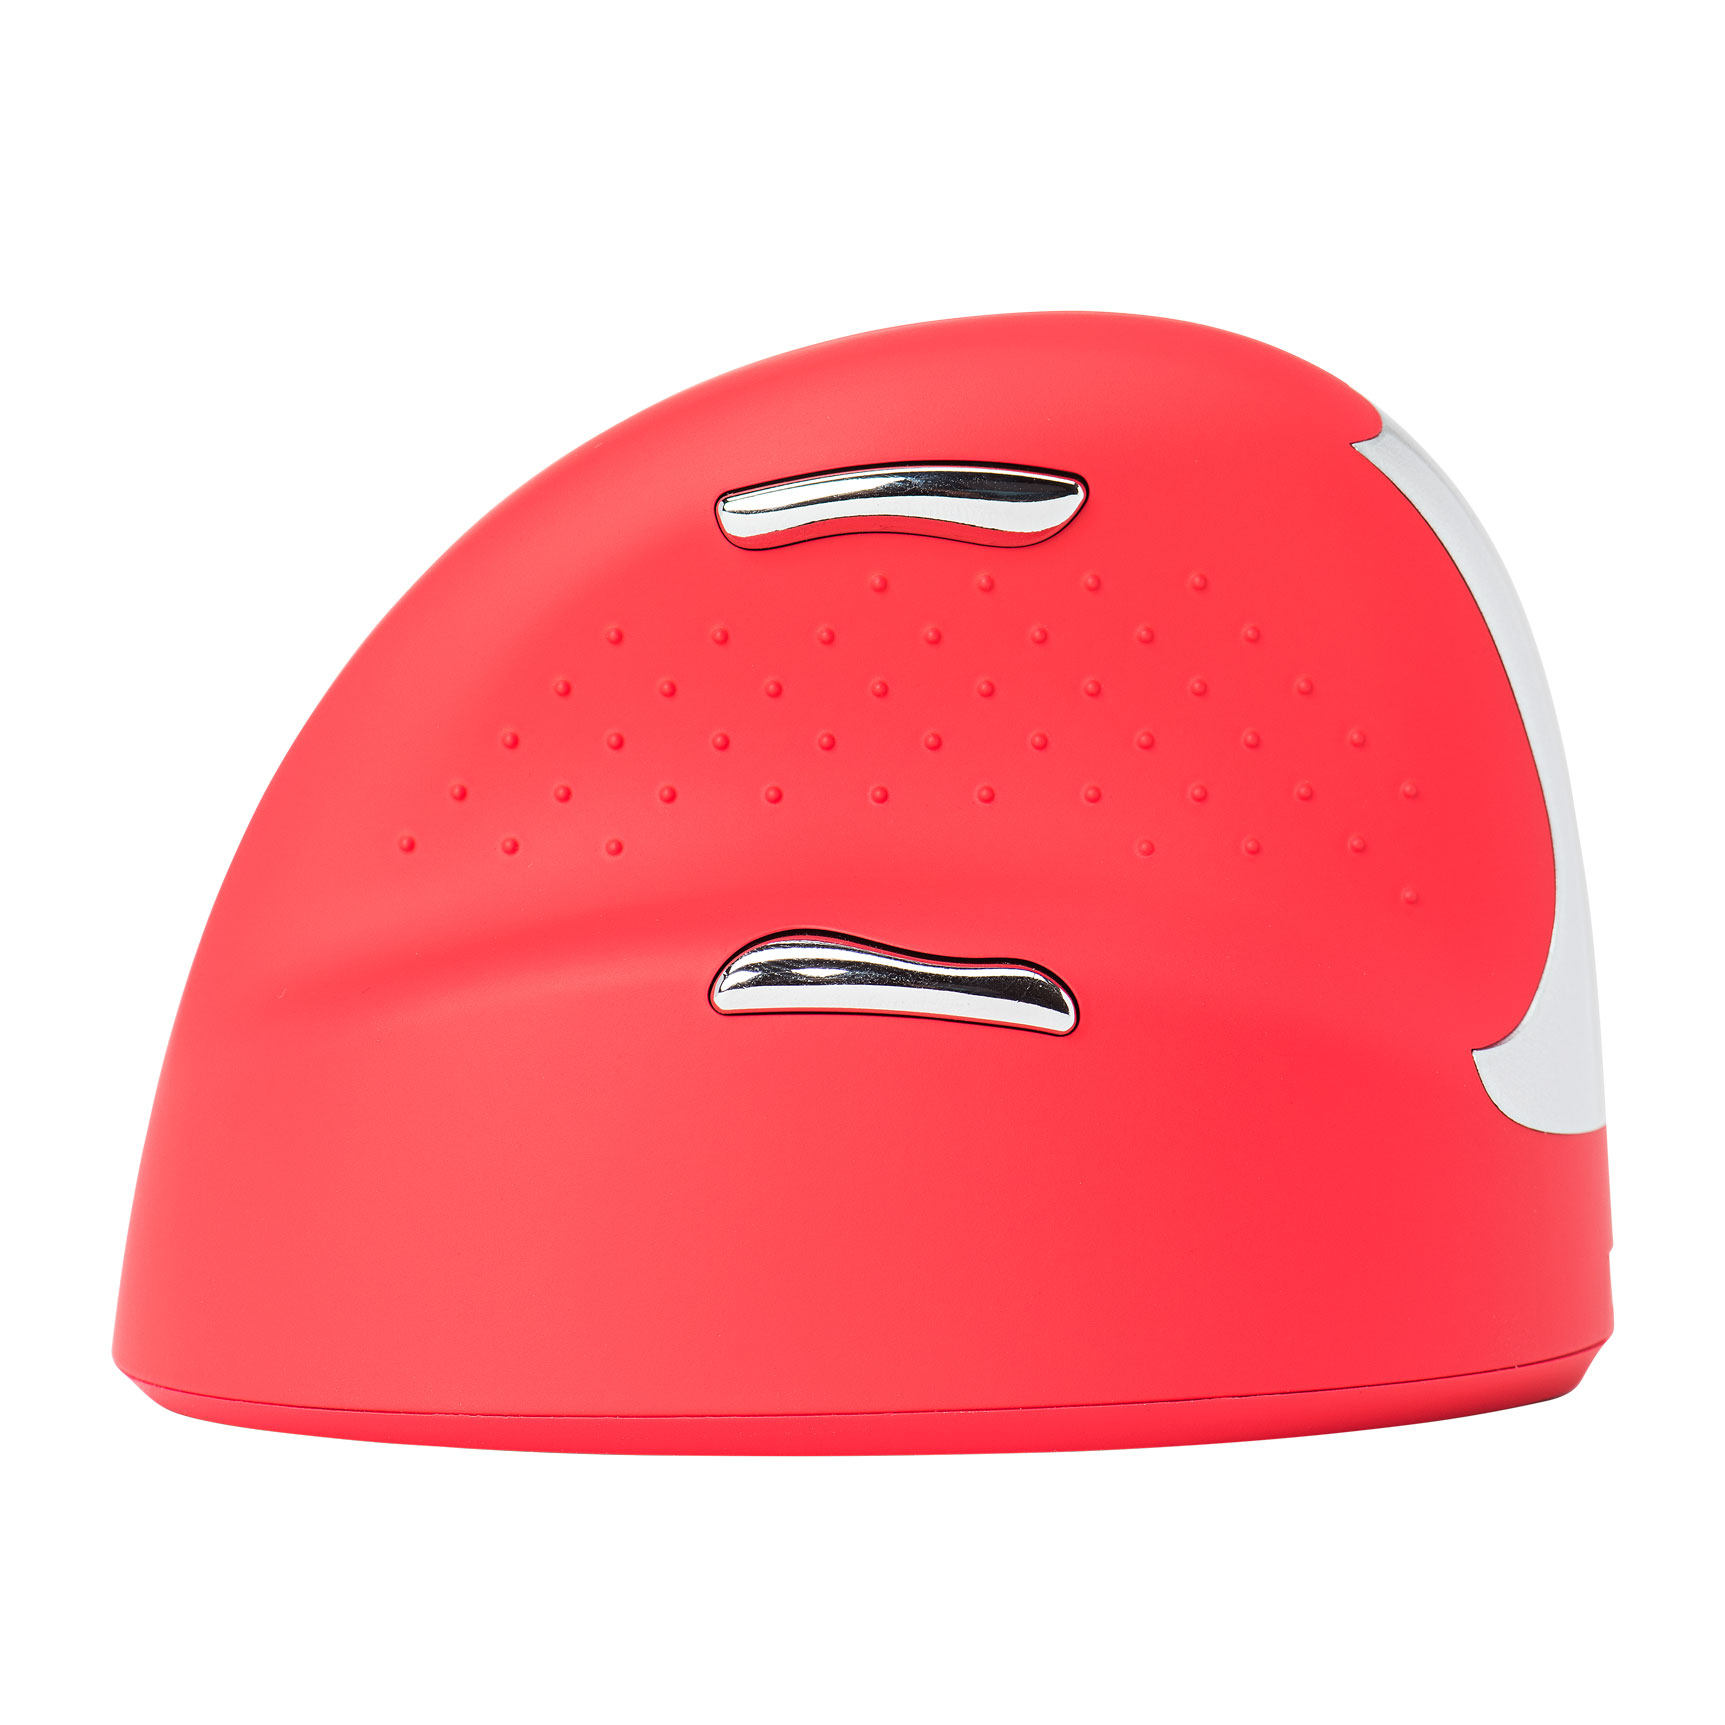 R-Go HE Sport Ergonomic Mouse,  Medium (165-195mm), Left Handed, Bluetooth, Red - 5